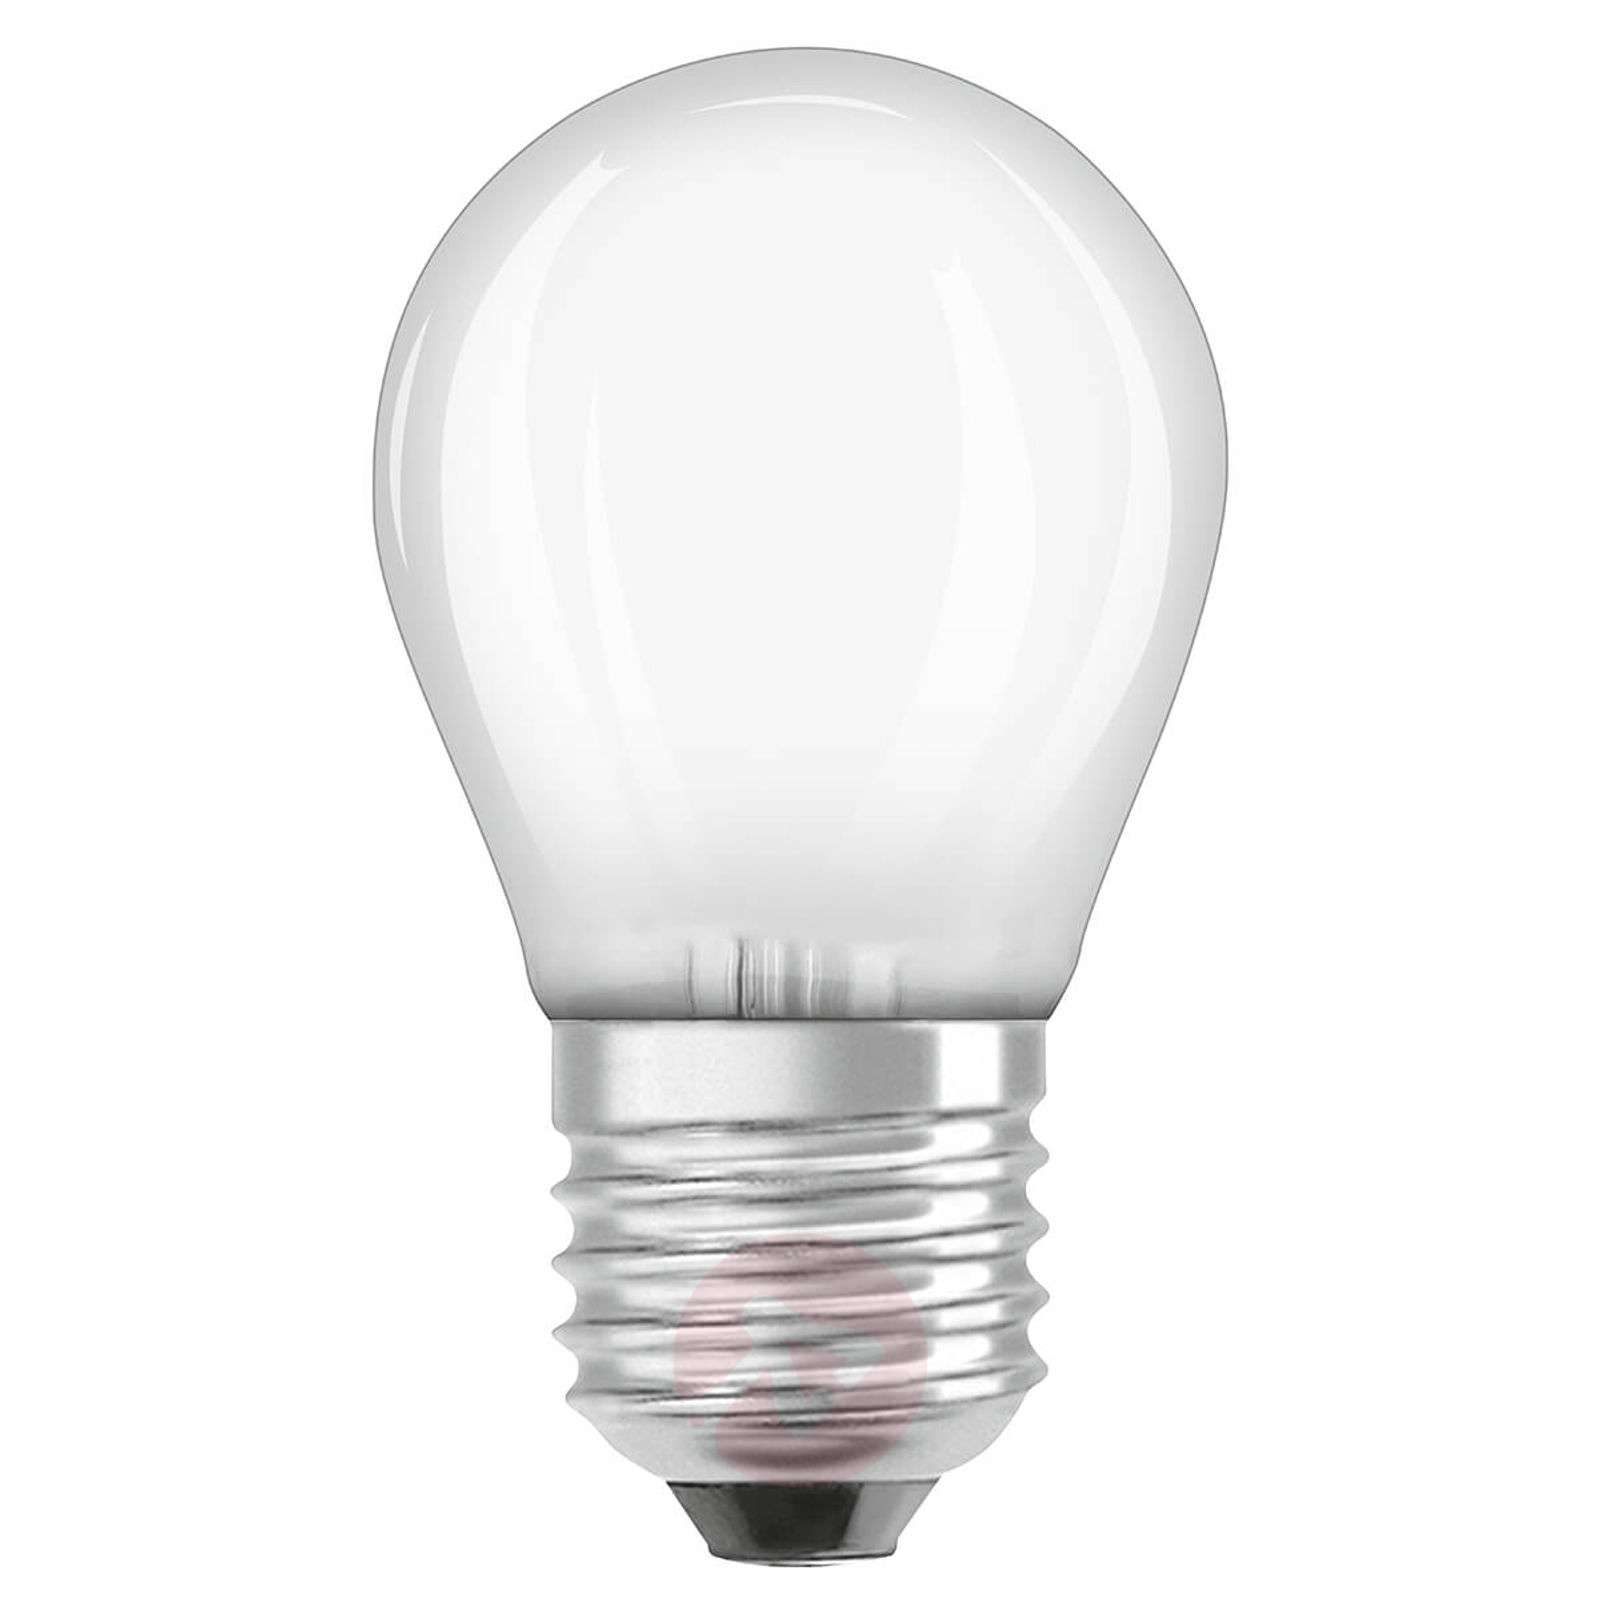 Ampoule goutte LED E27 3,2W, blanc chaud, dimmable-7262028-01